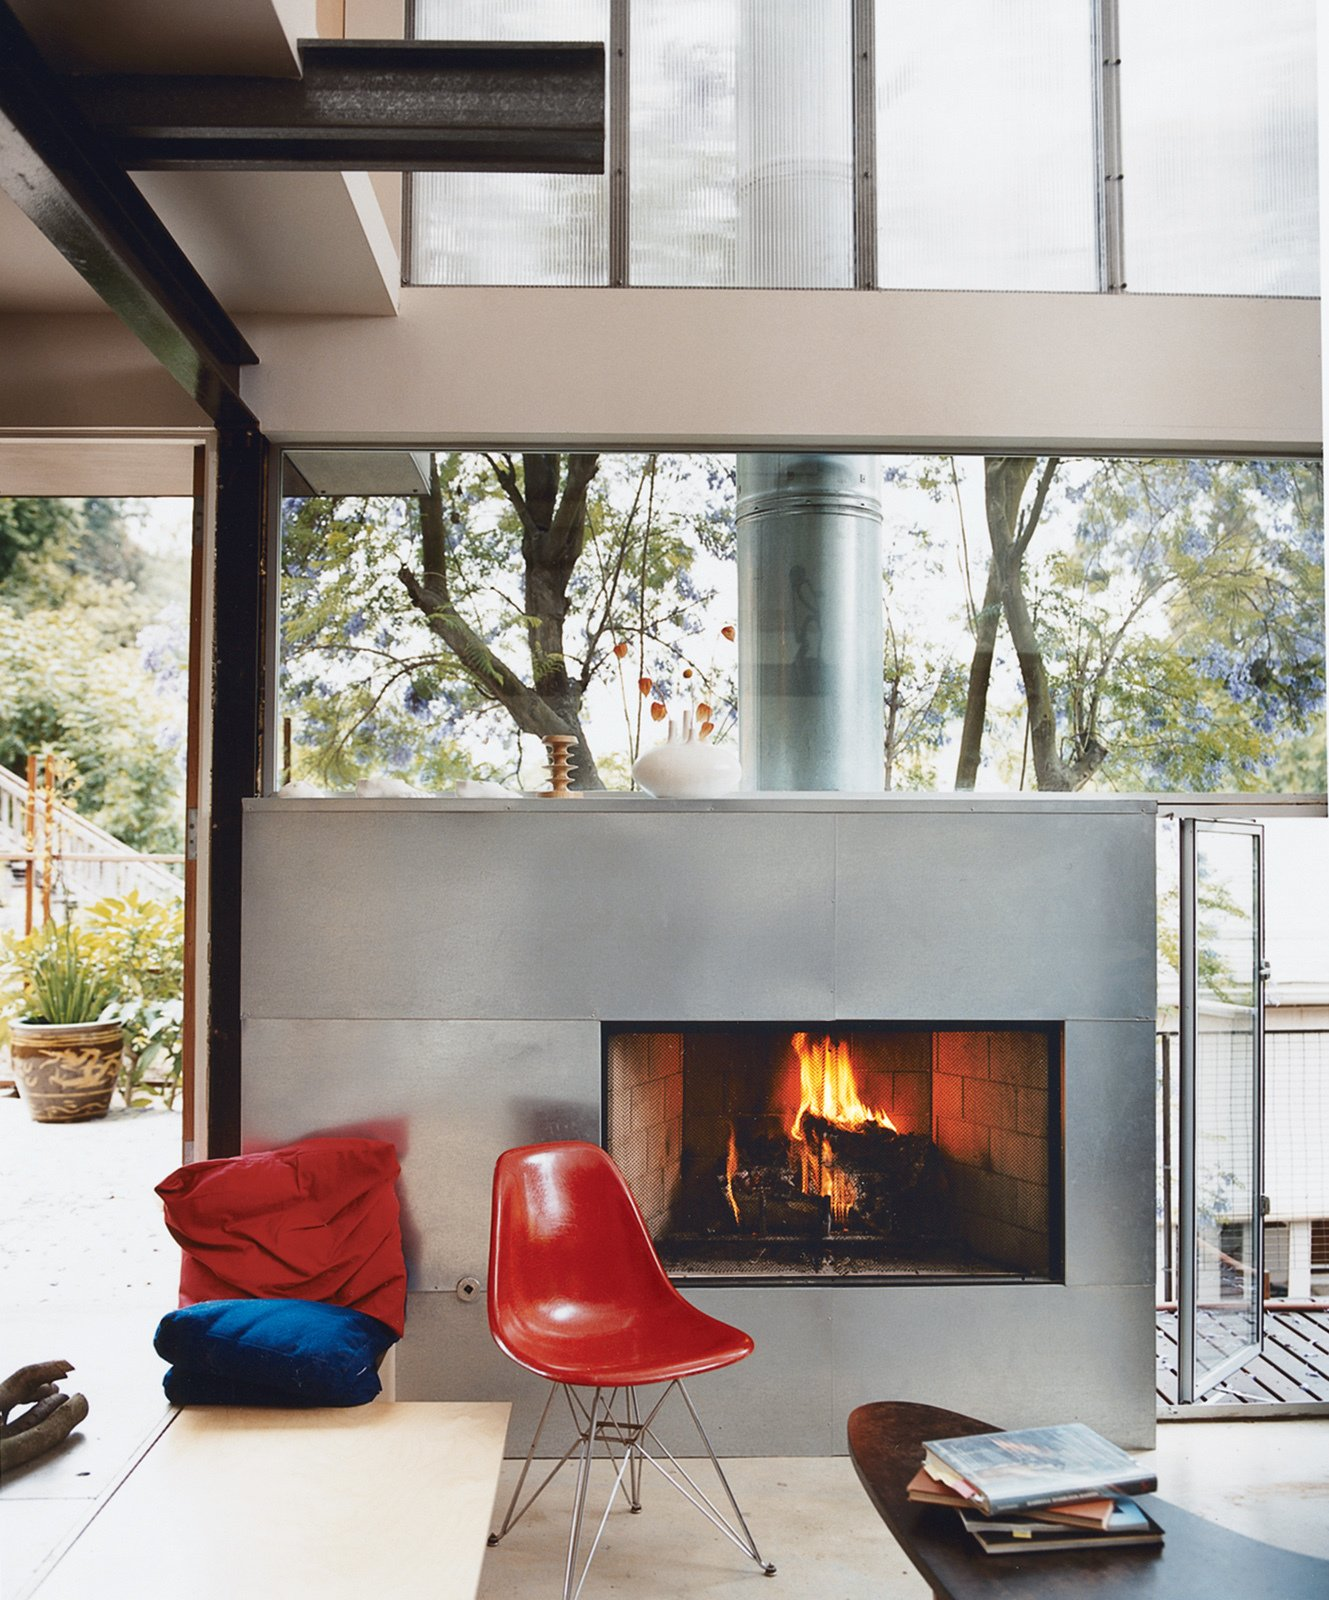 Galvanized steel was used to clad the fireplace.